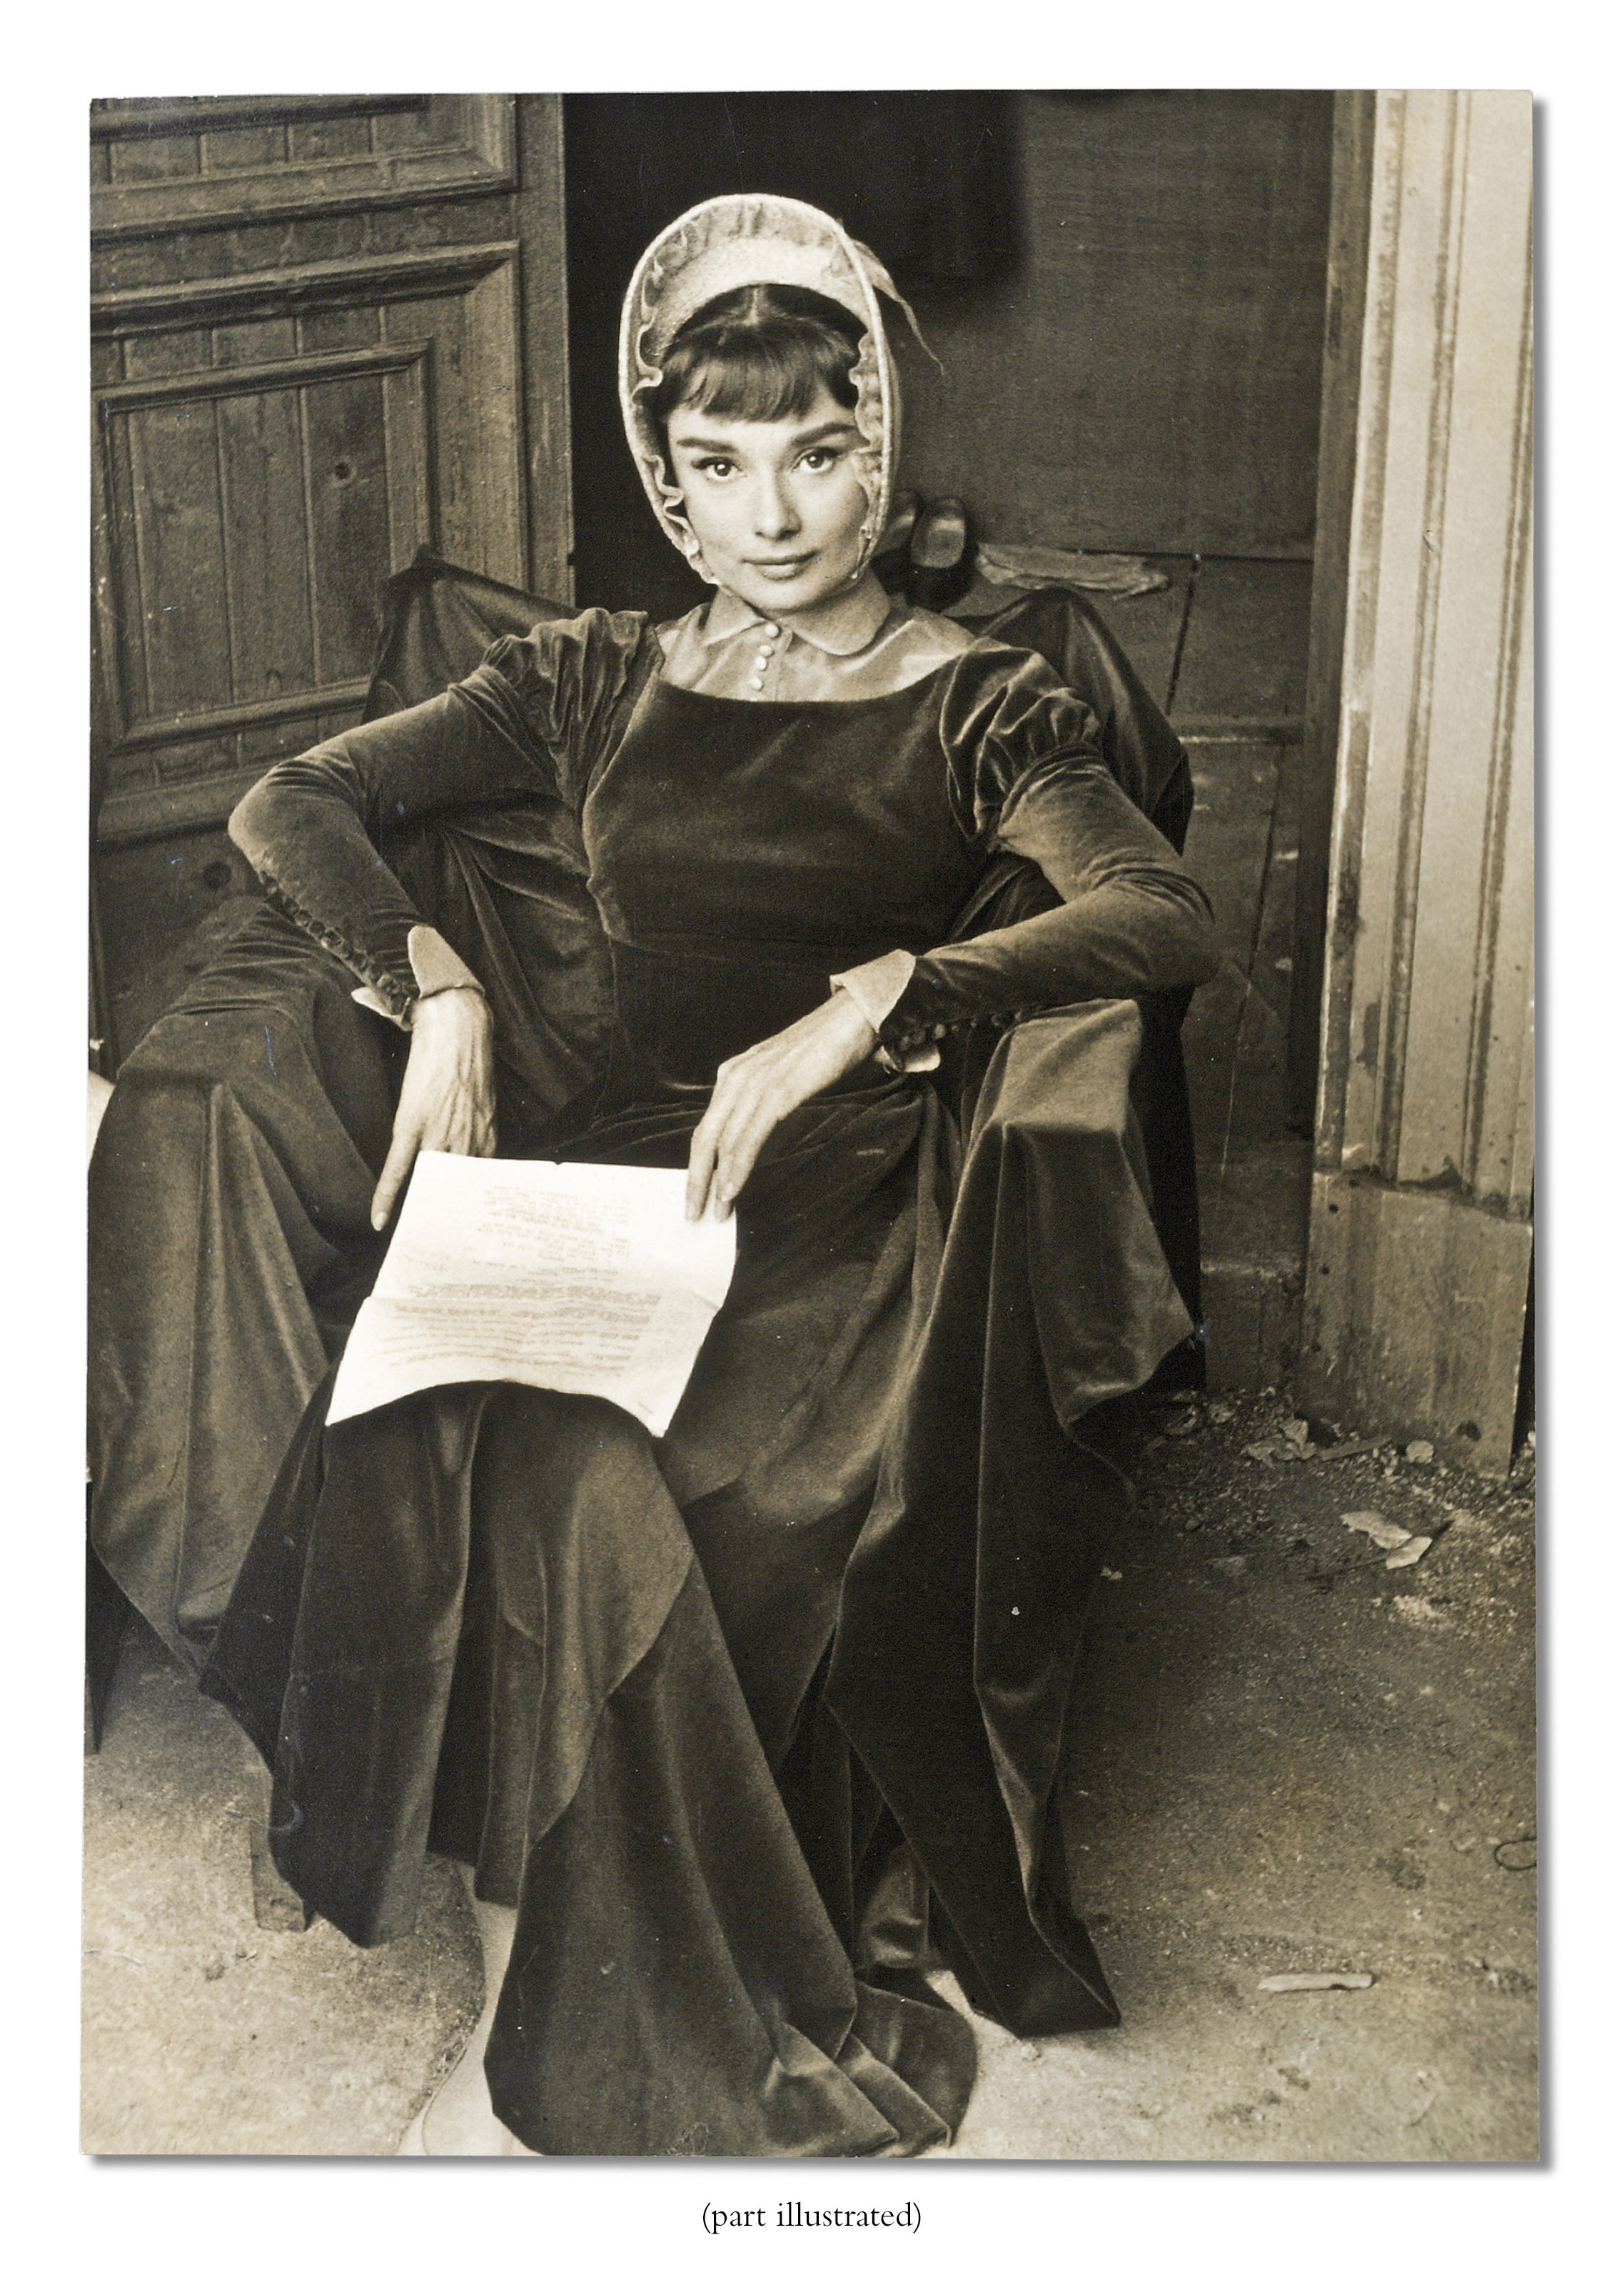 Audrey Hepburn as Natasha Rostov in the 1956 Paramount production War and Peace, Rome, 1955 two gelatin silver publicity portraits one with stamped photographer's credit (verso)